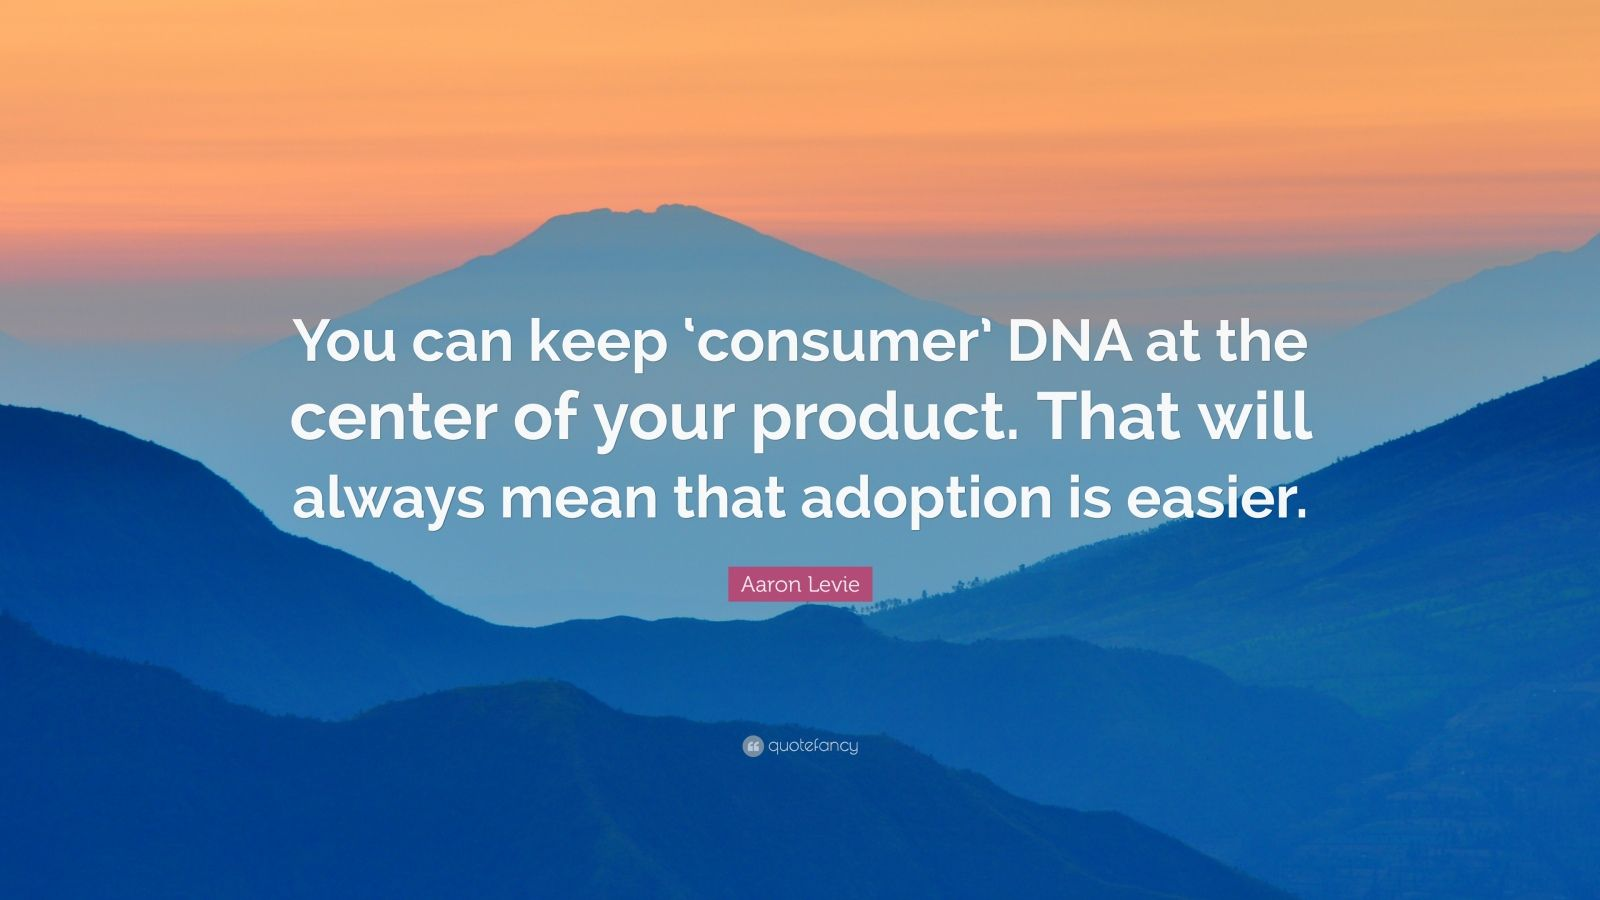 """Aaron Levie Quote: """"You can keep 'consumer' DNA at the center of your product. That will always mean that adoption is easier."""""""